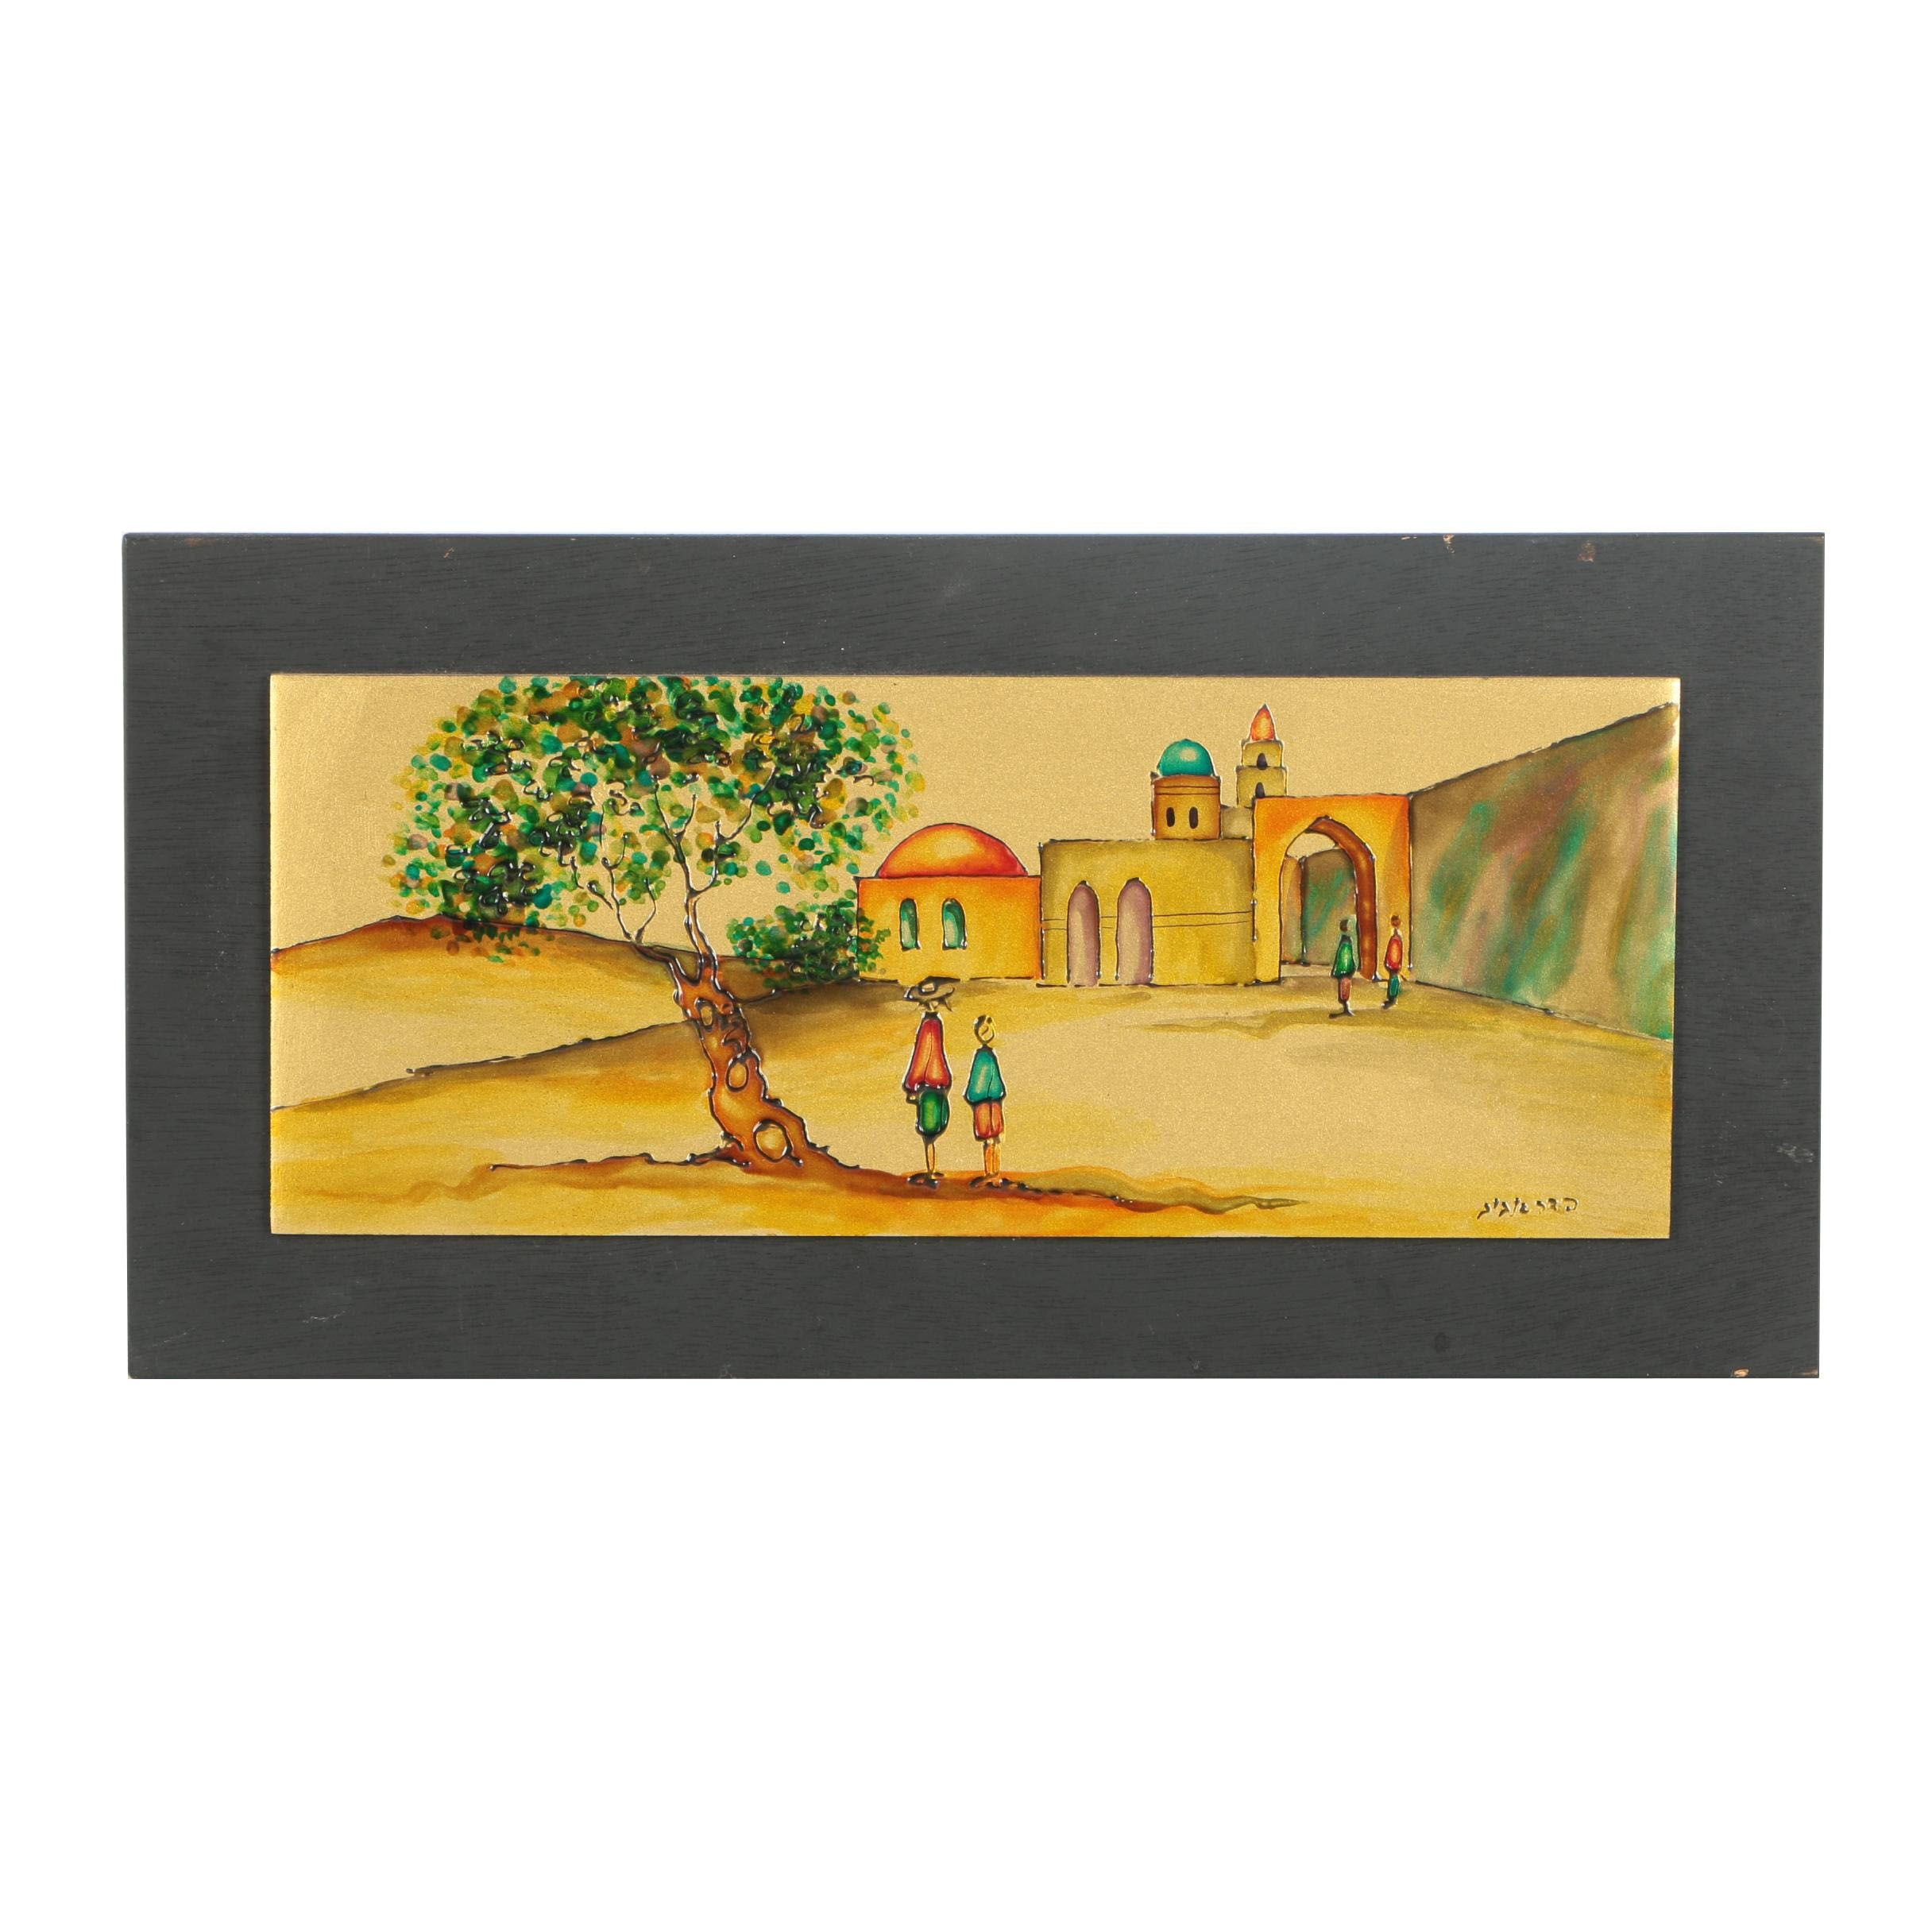 Decorative Wall Hanging Featuring Domed Buildings and Archways